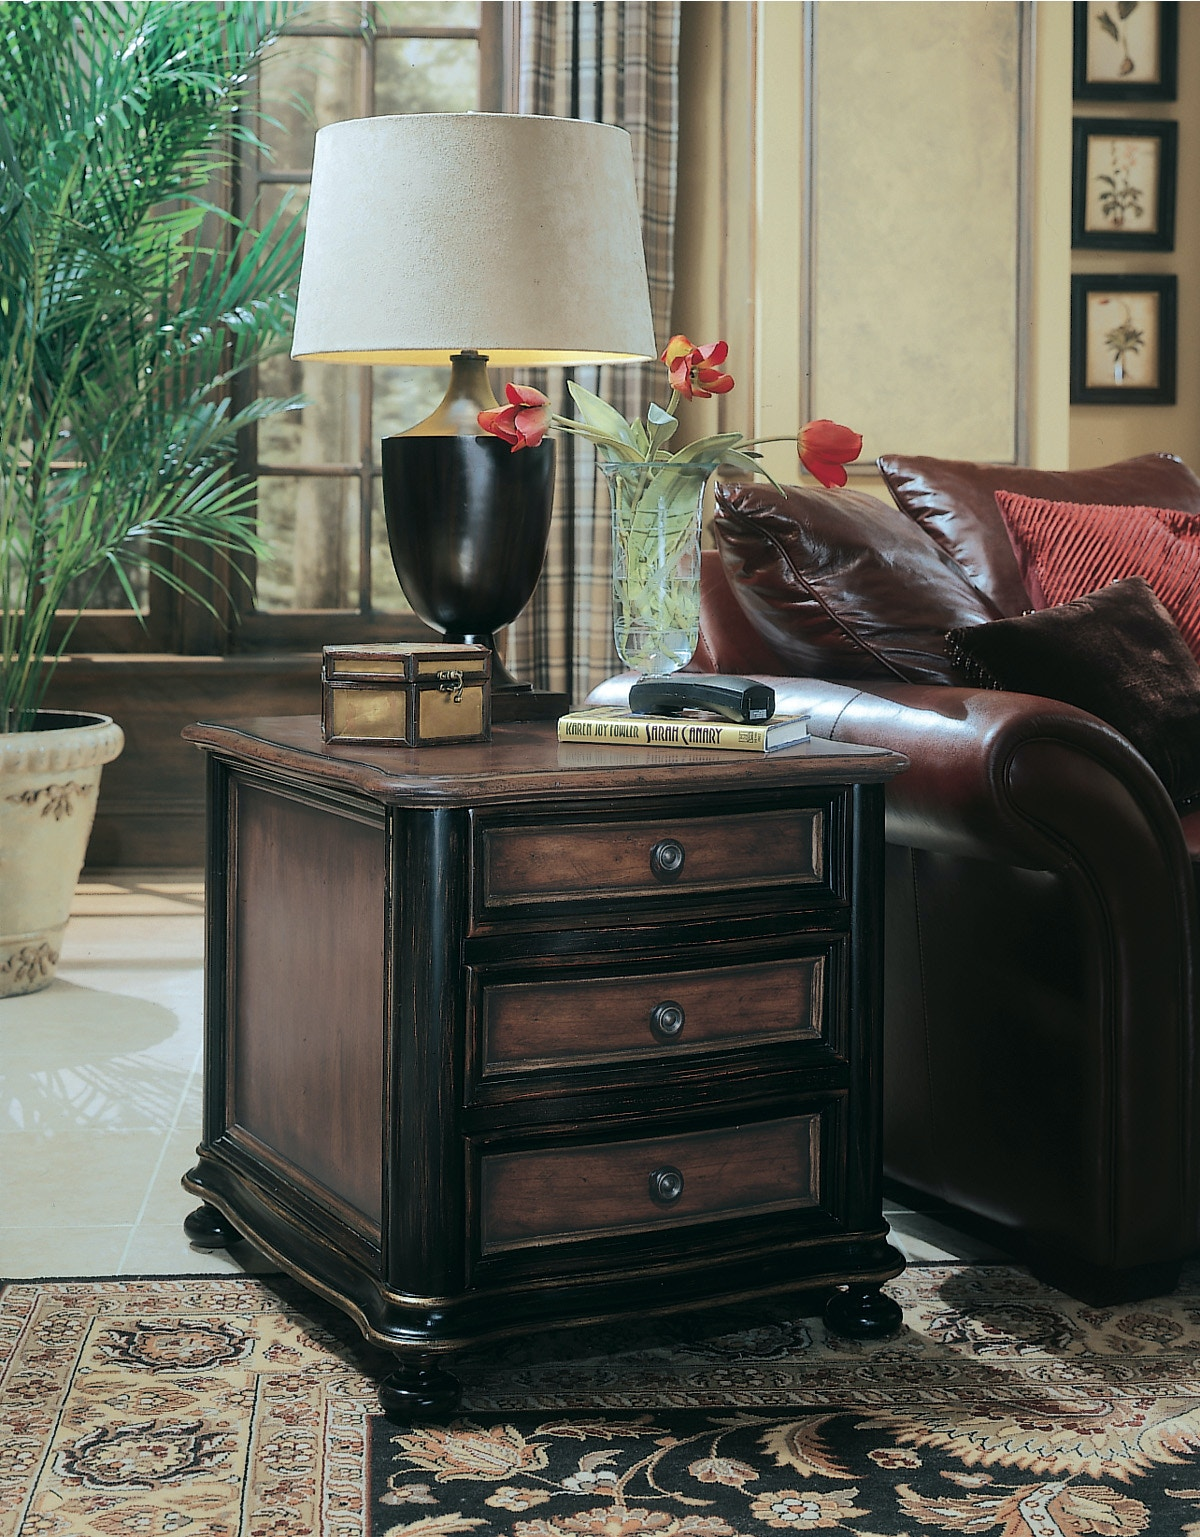 Hooker Furniture Preston Ridge Chairside Chest 864 80 149